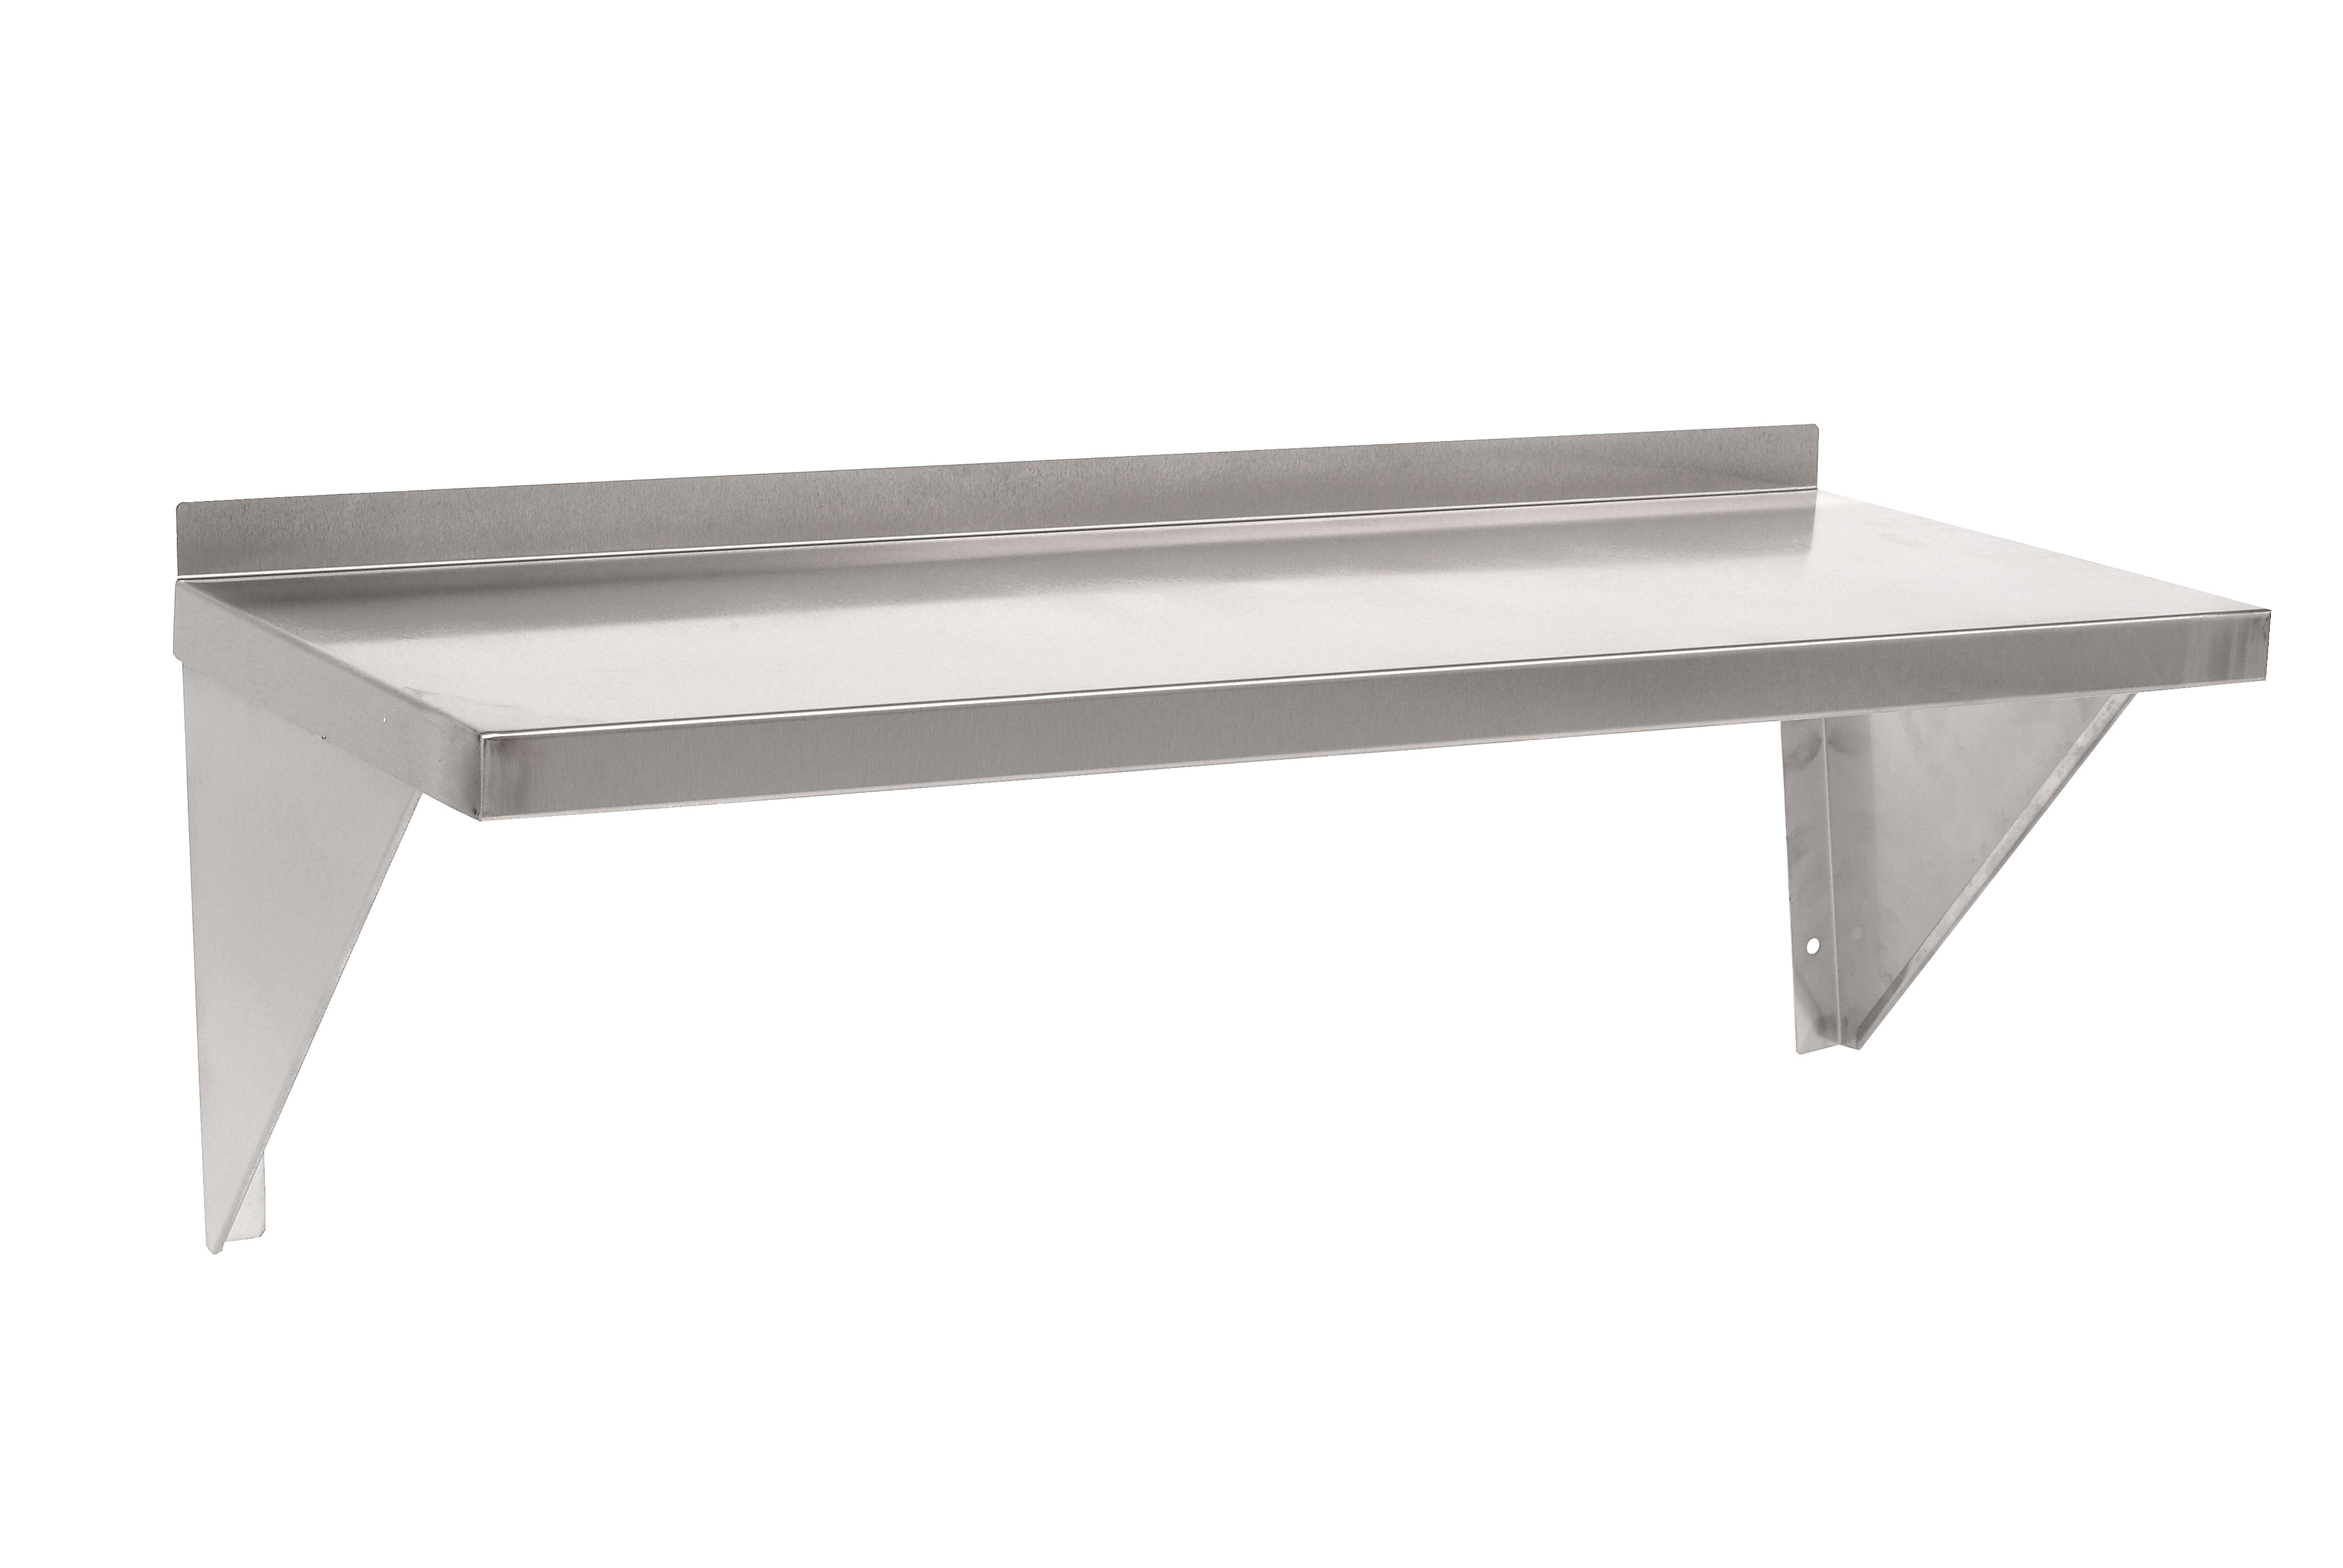 stainless steel storage wall shelves shelf4w parry